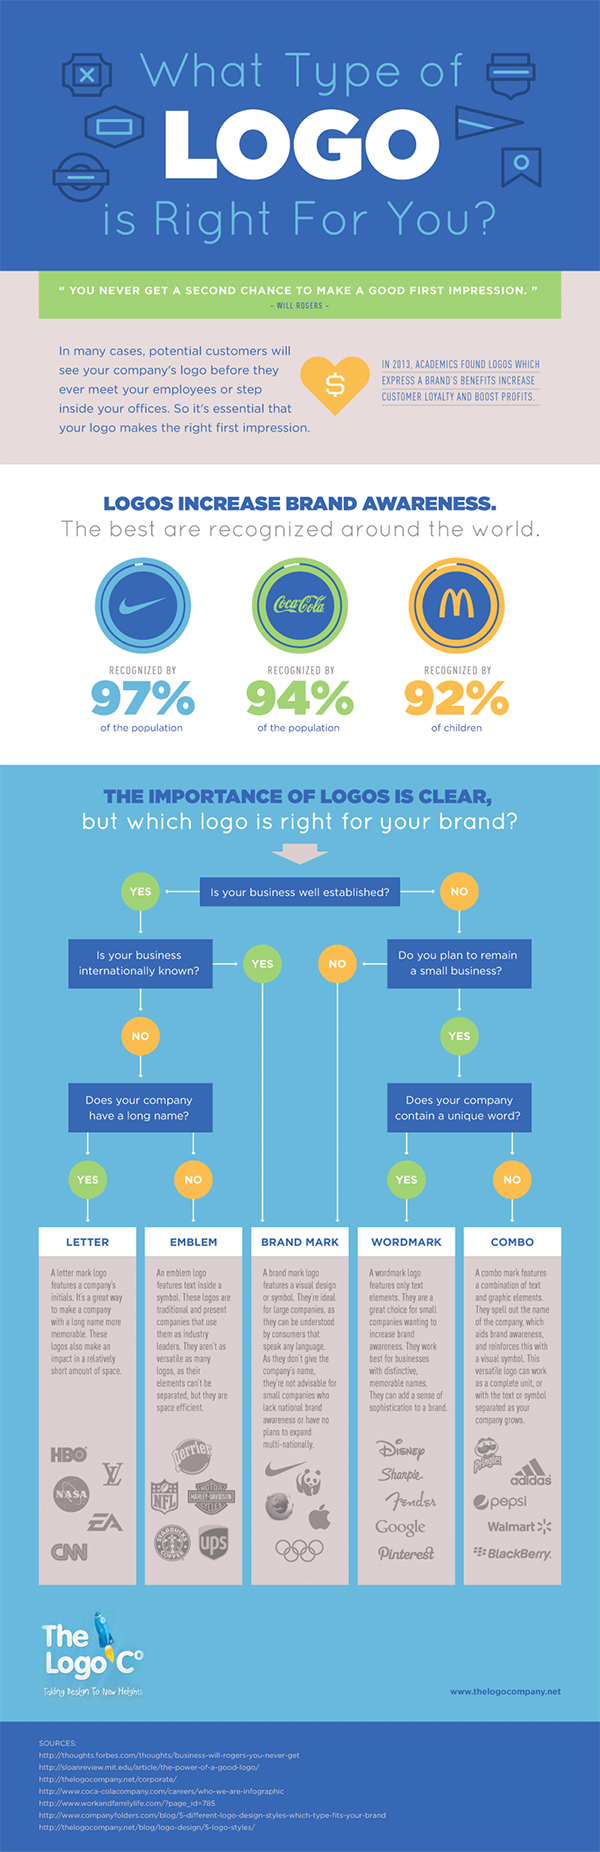 How to Decide What Type of Logo is Right for Your Business